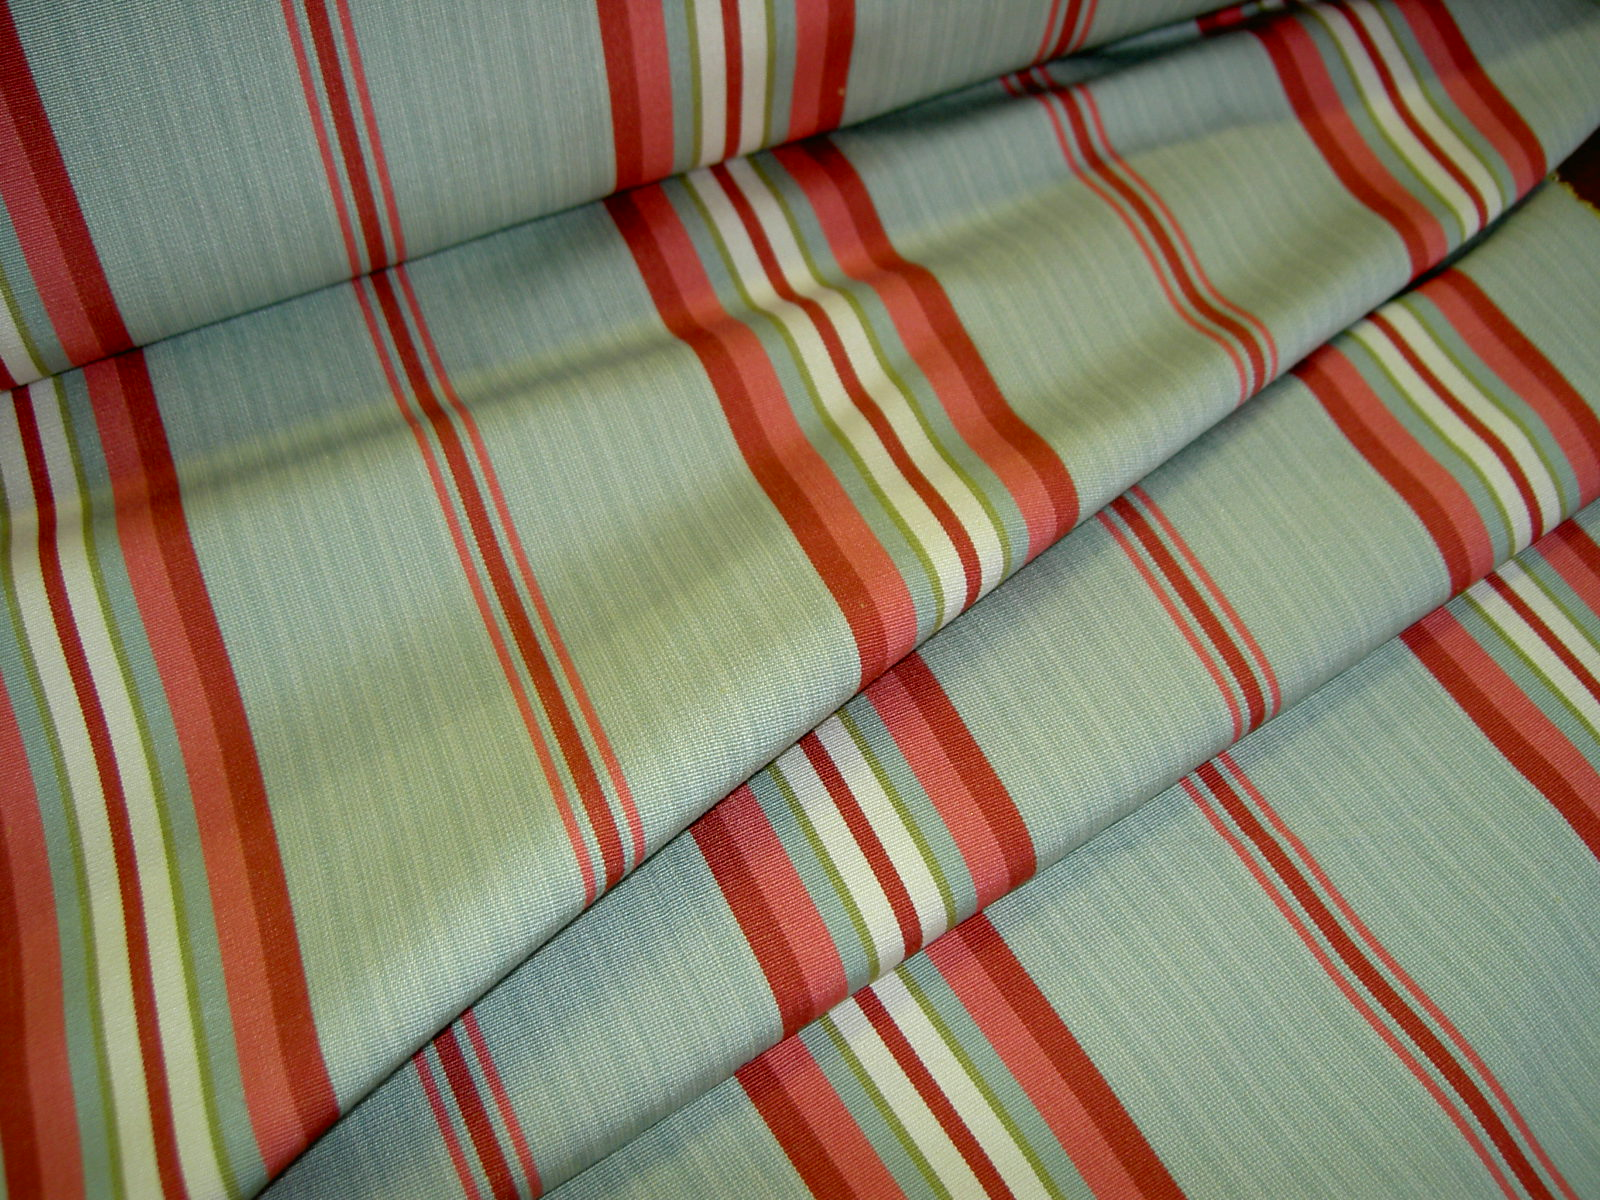 Folded Fabric Image Of Striped Multiuse Discount Designer Home Decor Fabric  At Schindlers